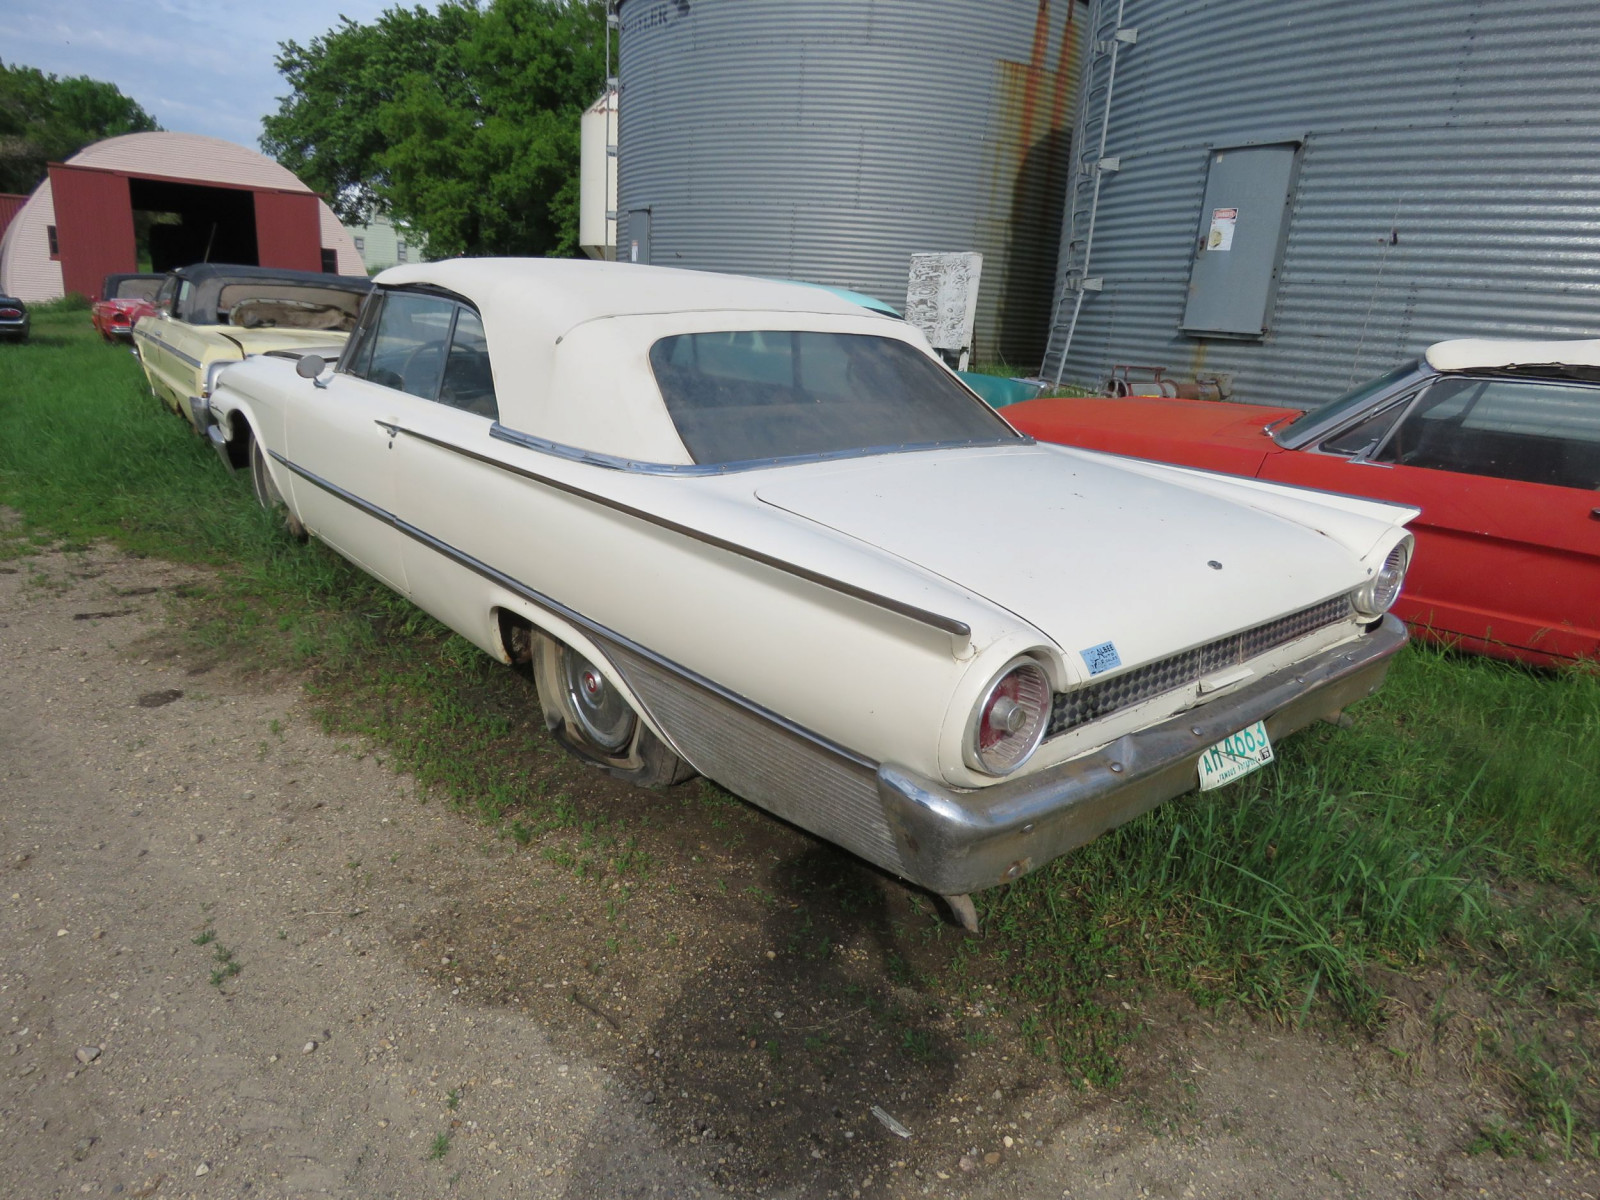 1961 Ford Sunliner Convertible 1G55W143311 - Image 4